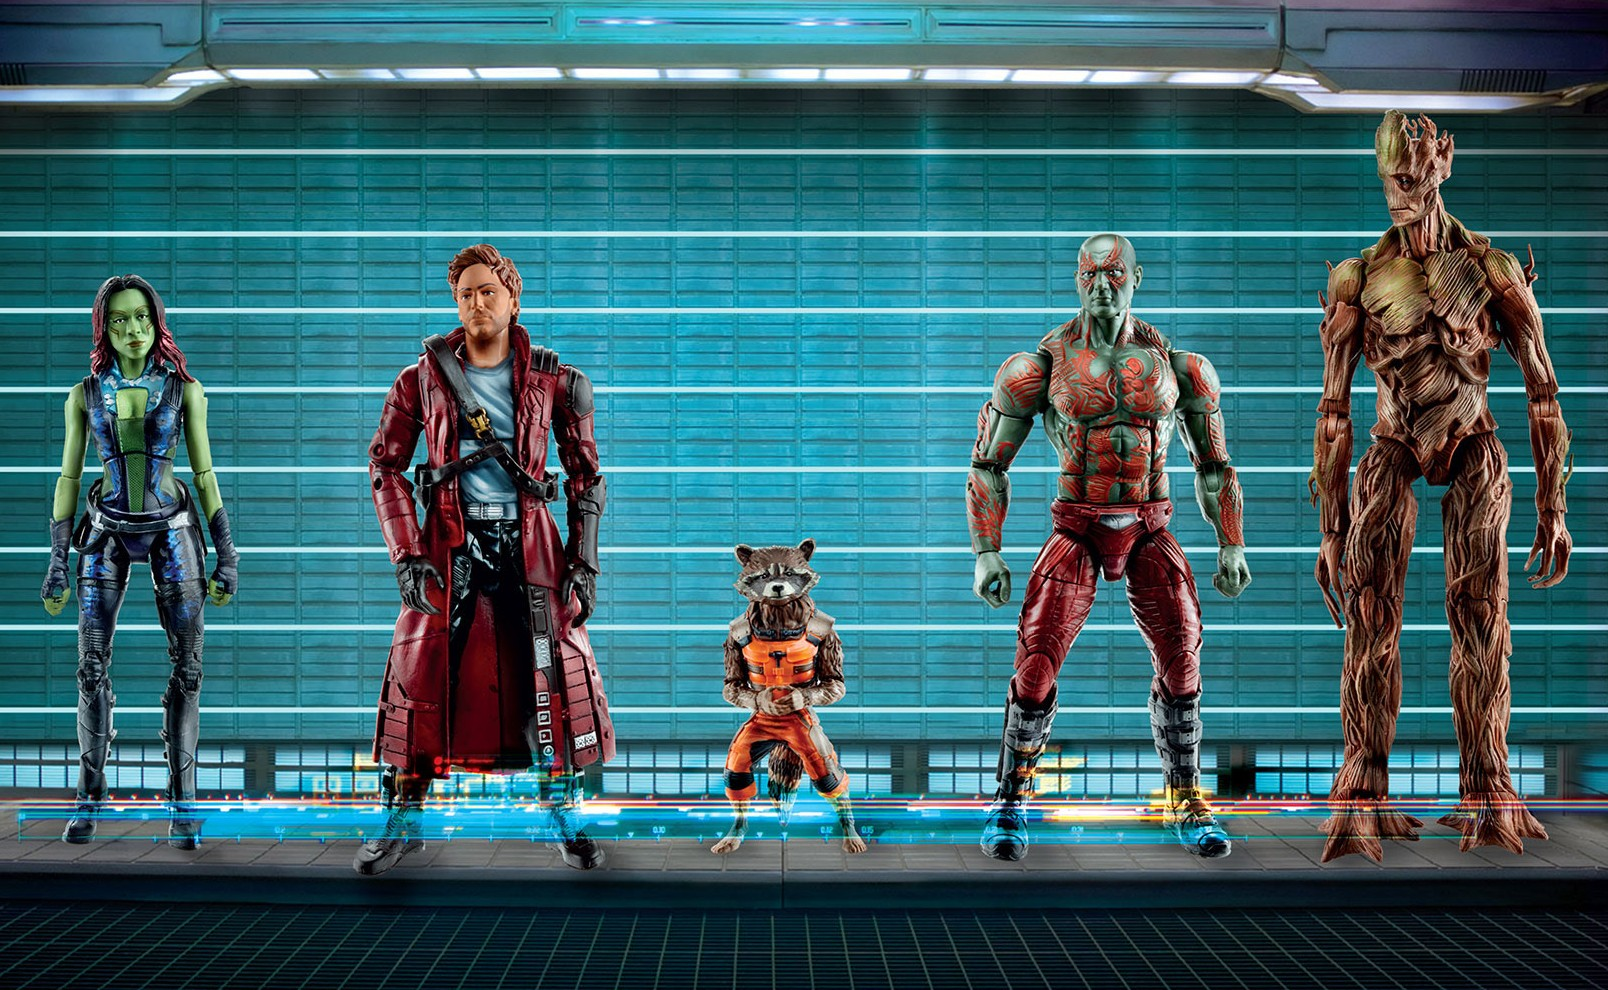 Guardians Of The Galaxy Wallpapers Movie #12727 Wallpaper | Wallpaper 1320